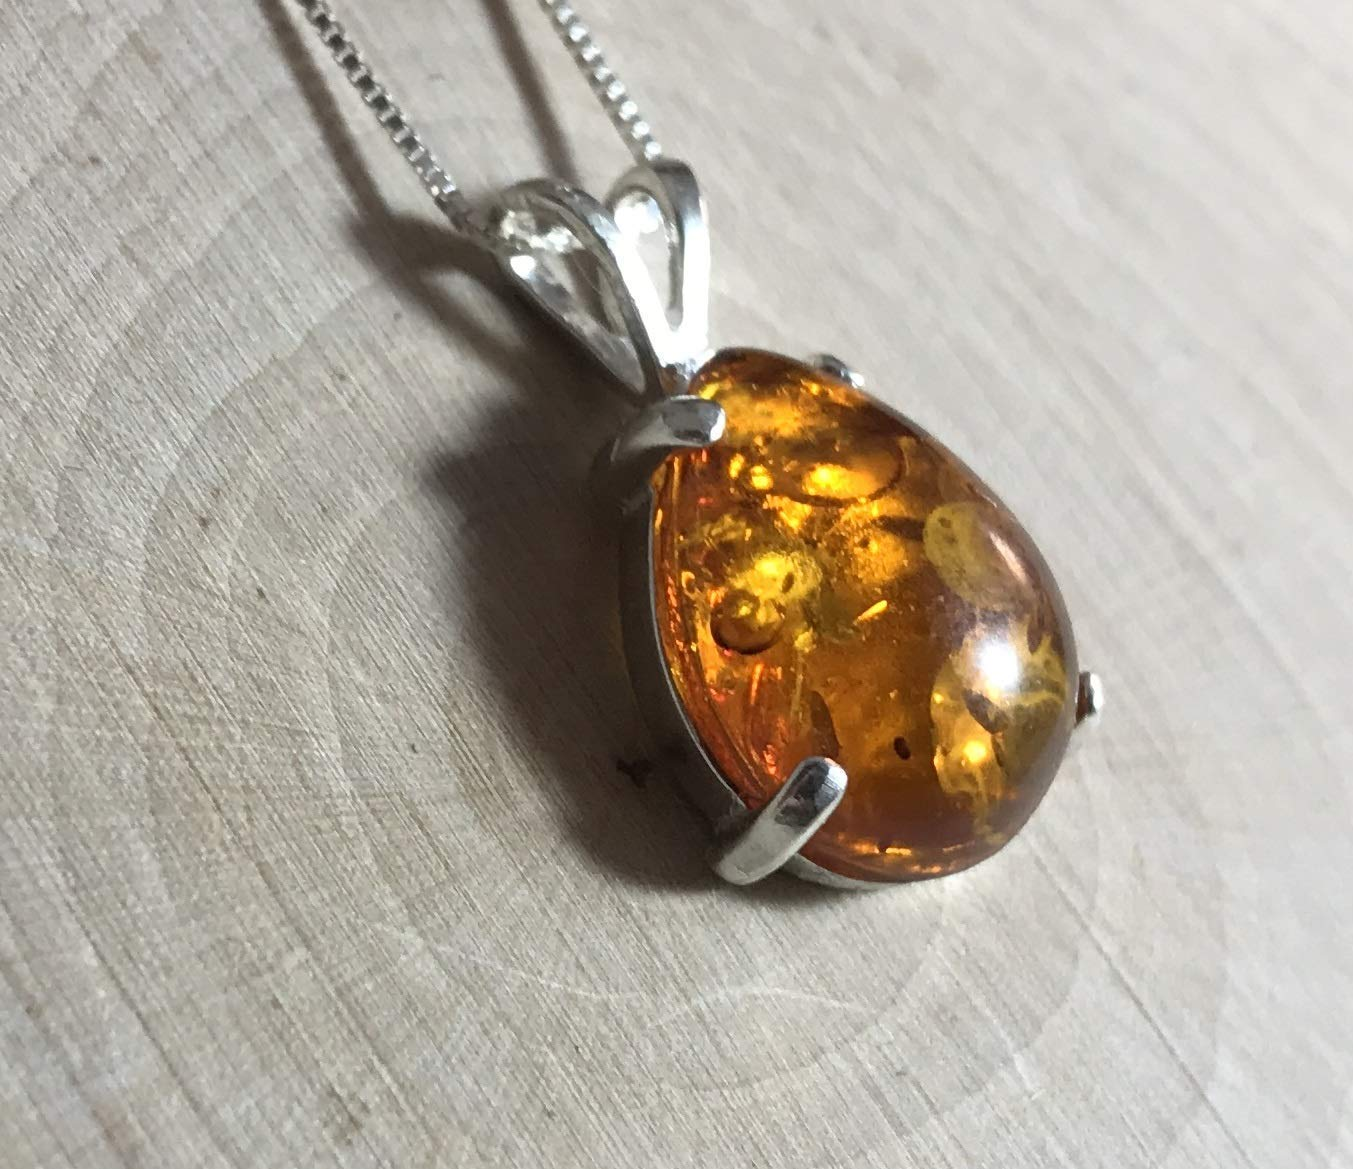 Hand Carved Amber Amulet Pendant Tumble Stone Amulet Necklace on adjustable cord Amber Jewelry Protection Amulet For Men or Women